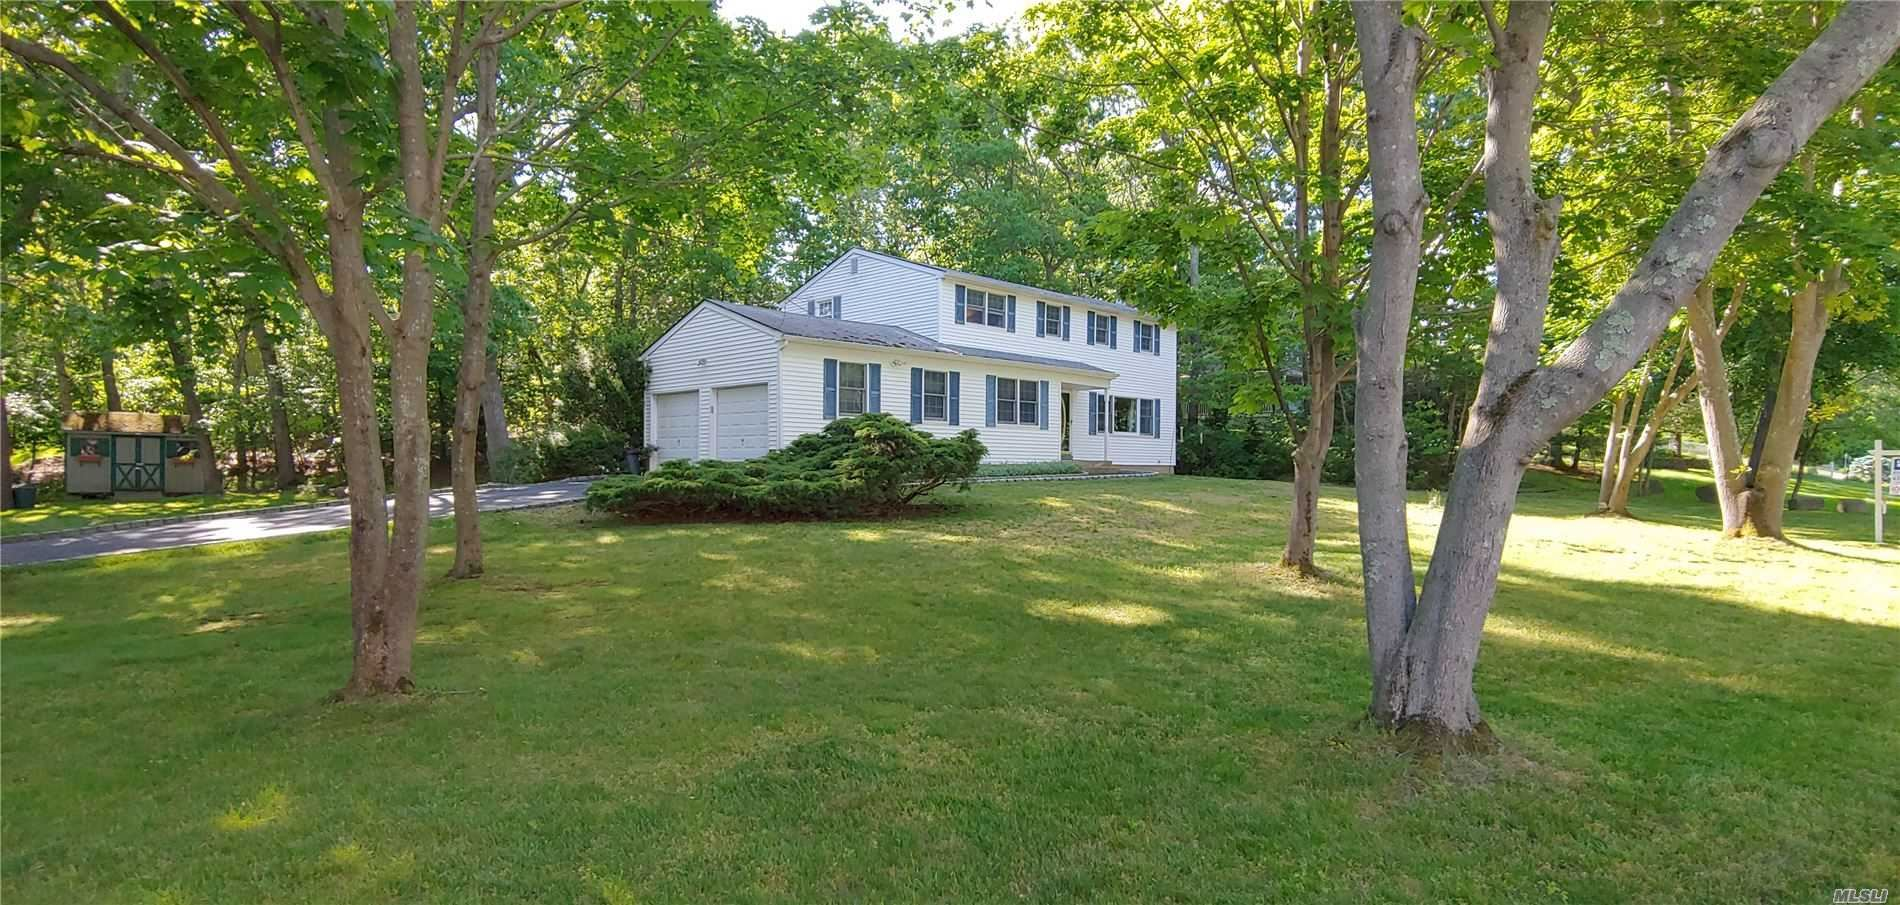 61 Stephen Drive, Wading River, NY 11792 - MLS#: 3213153